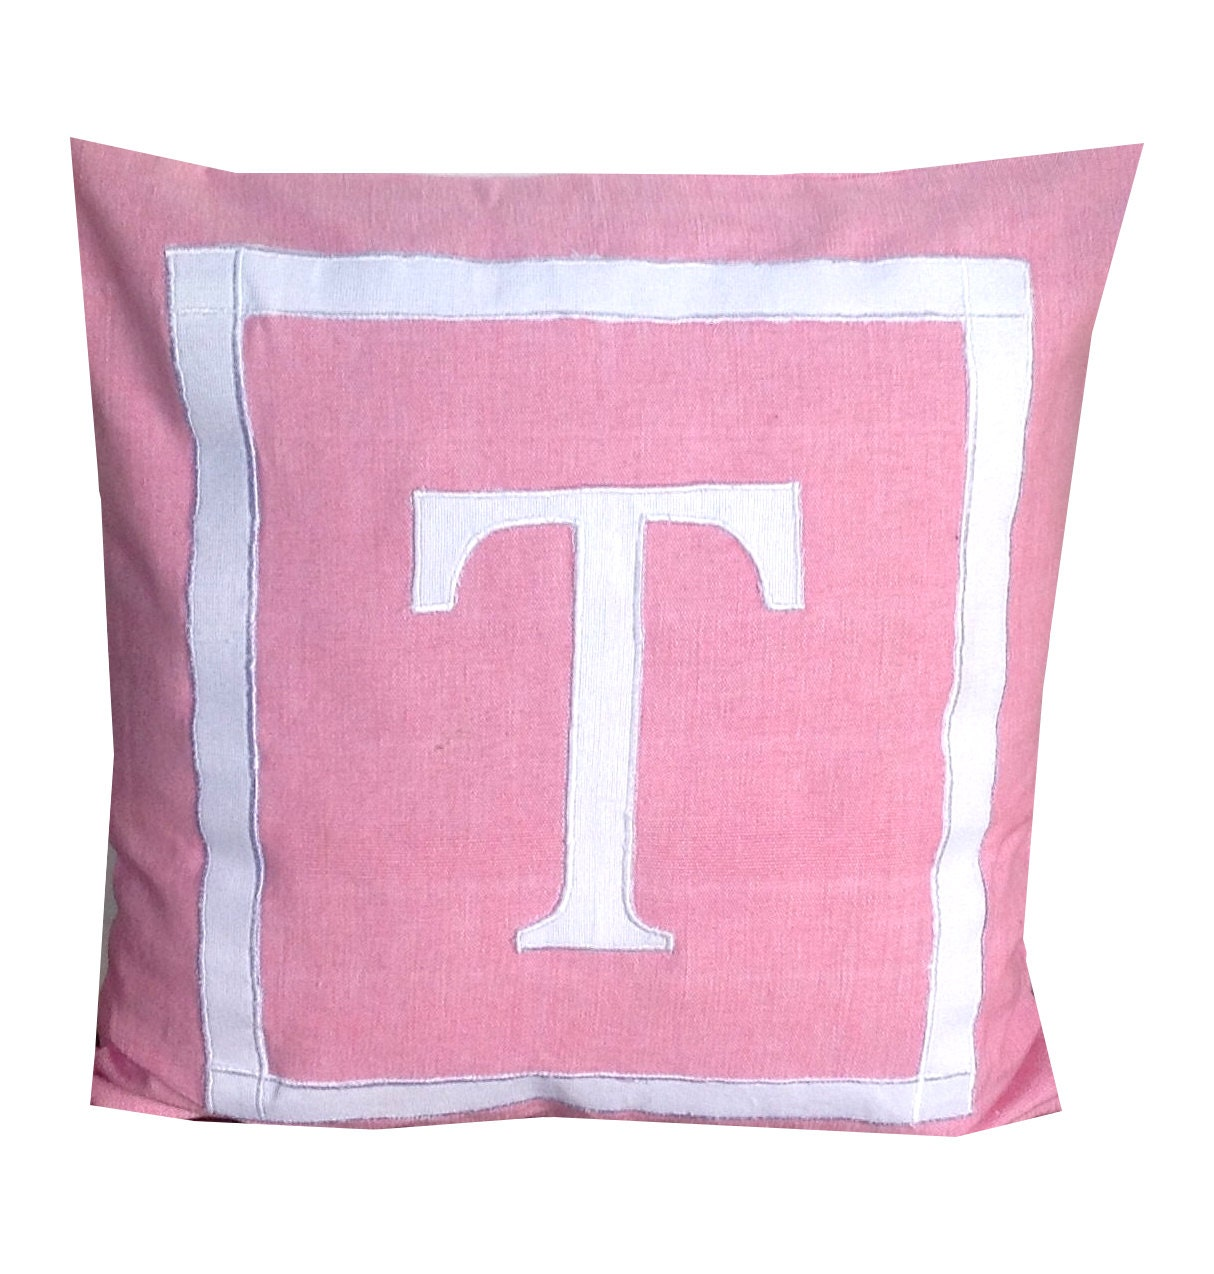 Decorative Pillows For Crib : 30% OFF Monogram Nursery pillows Pink Throw Pillows Nursery